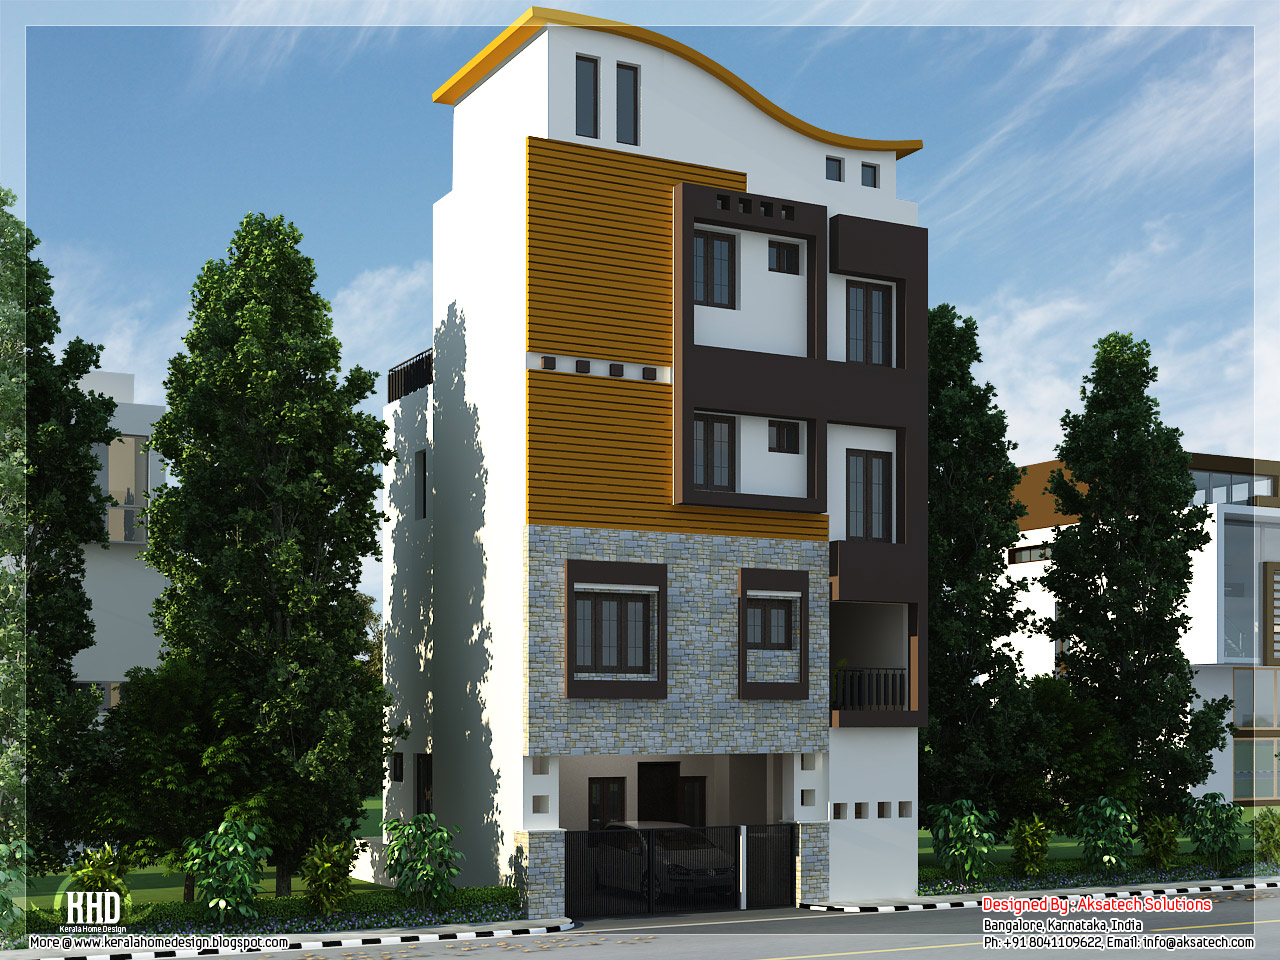 Front Elevation Of Small Houses - Native Home Garden Design